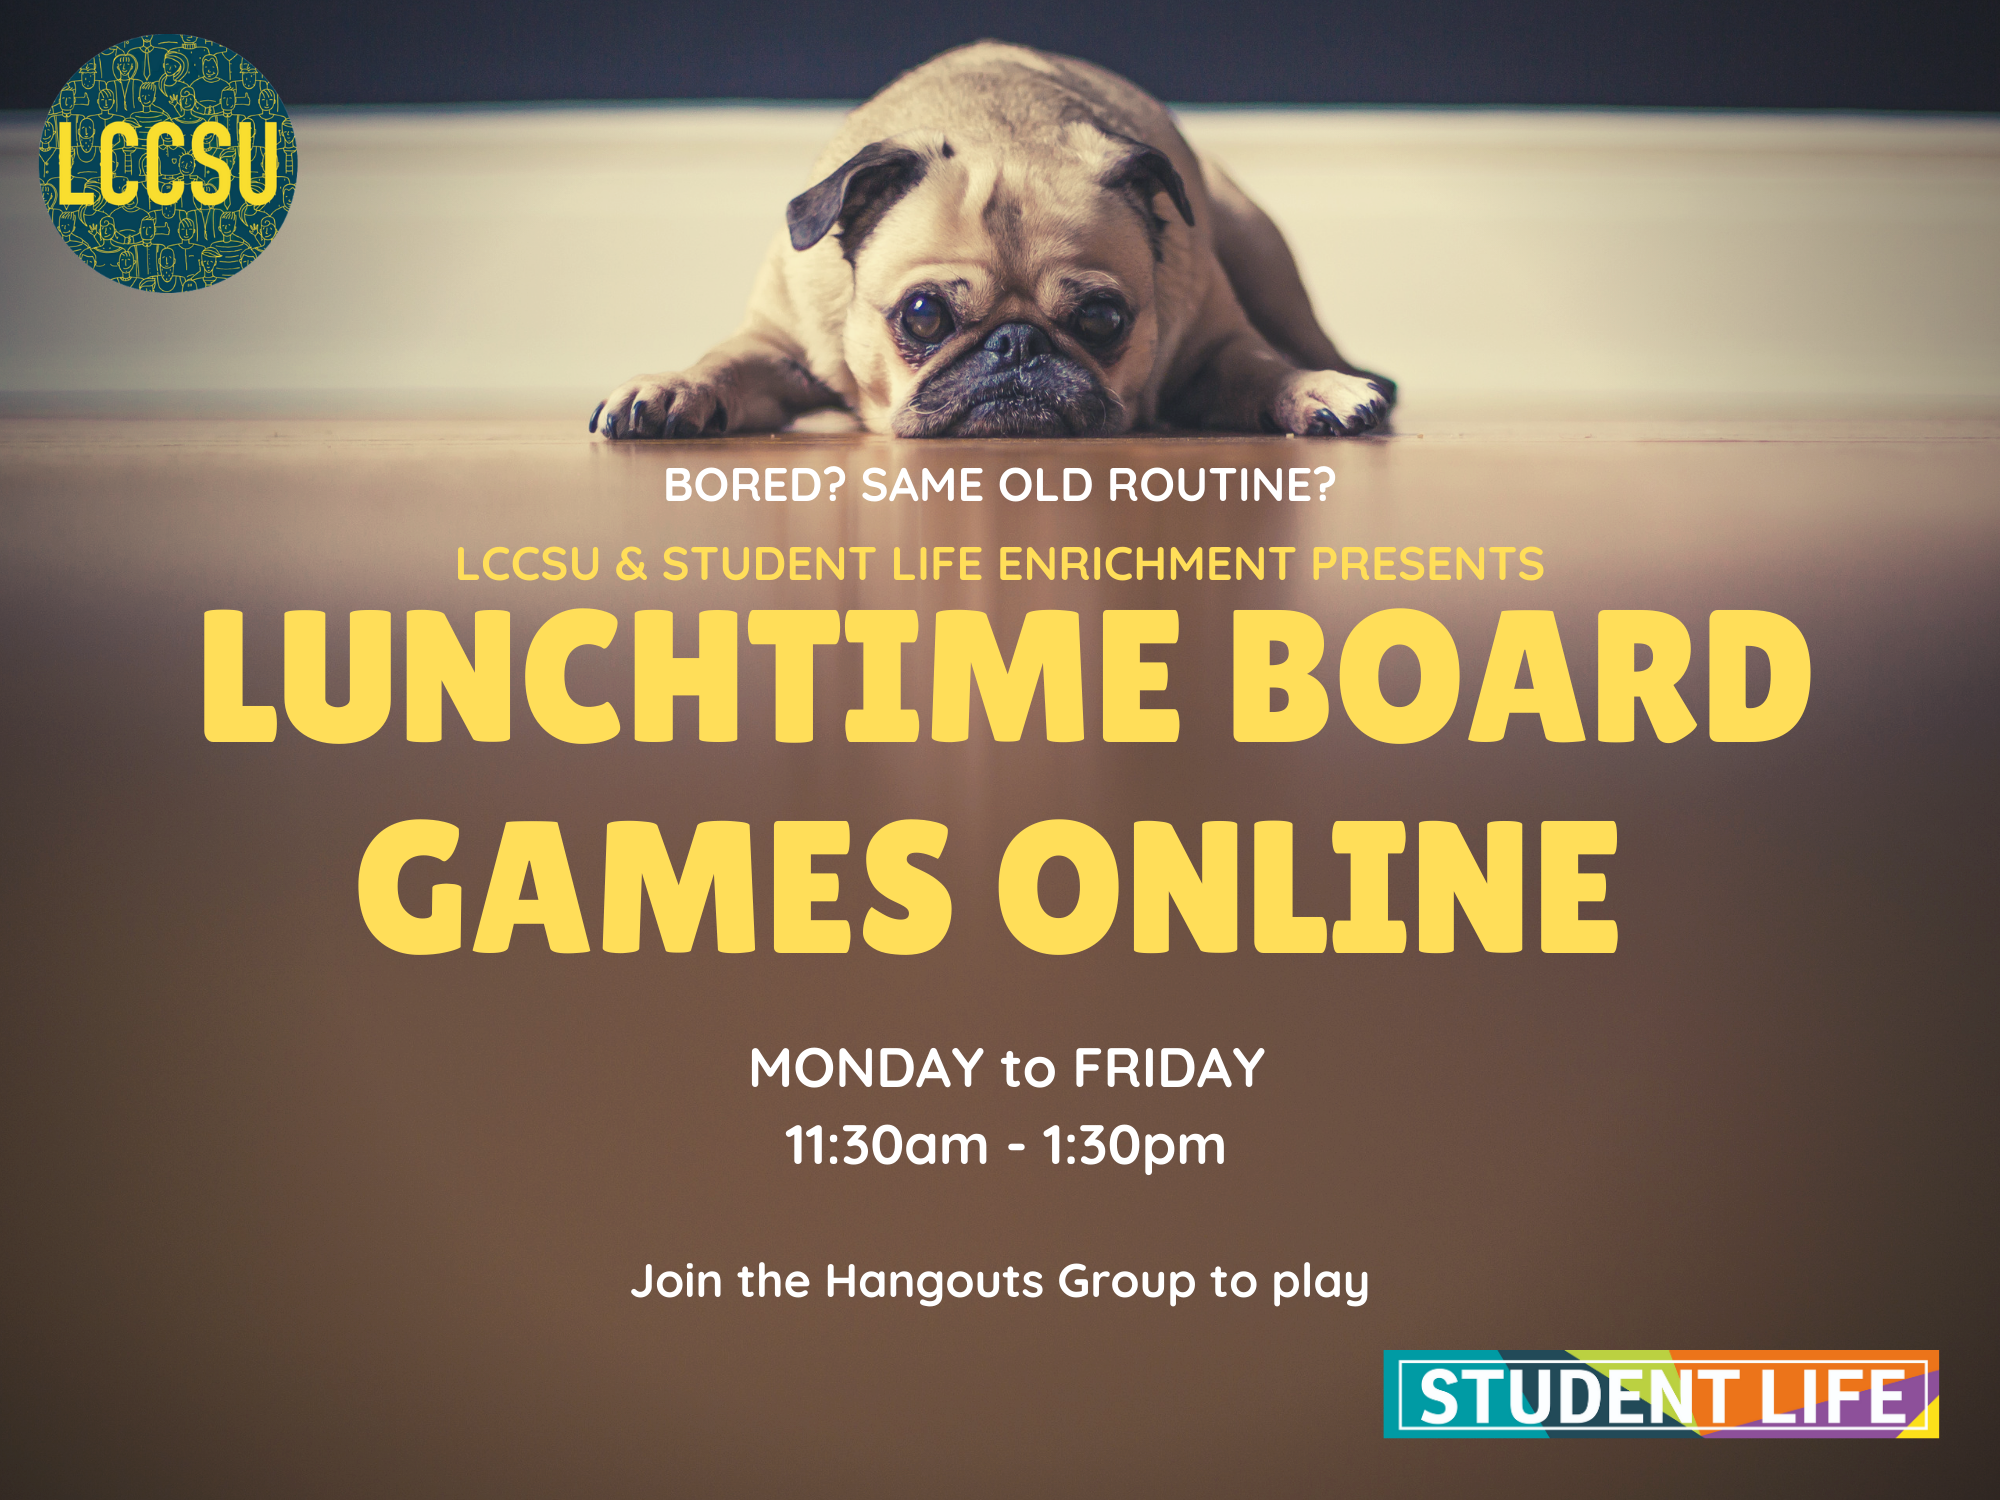 Lunchtime board games website